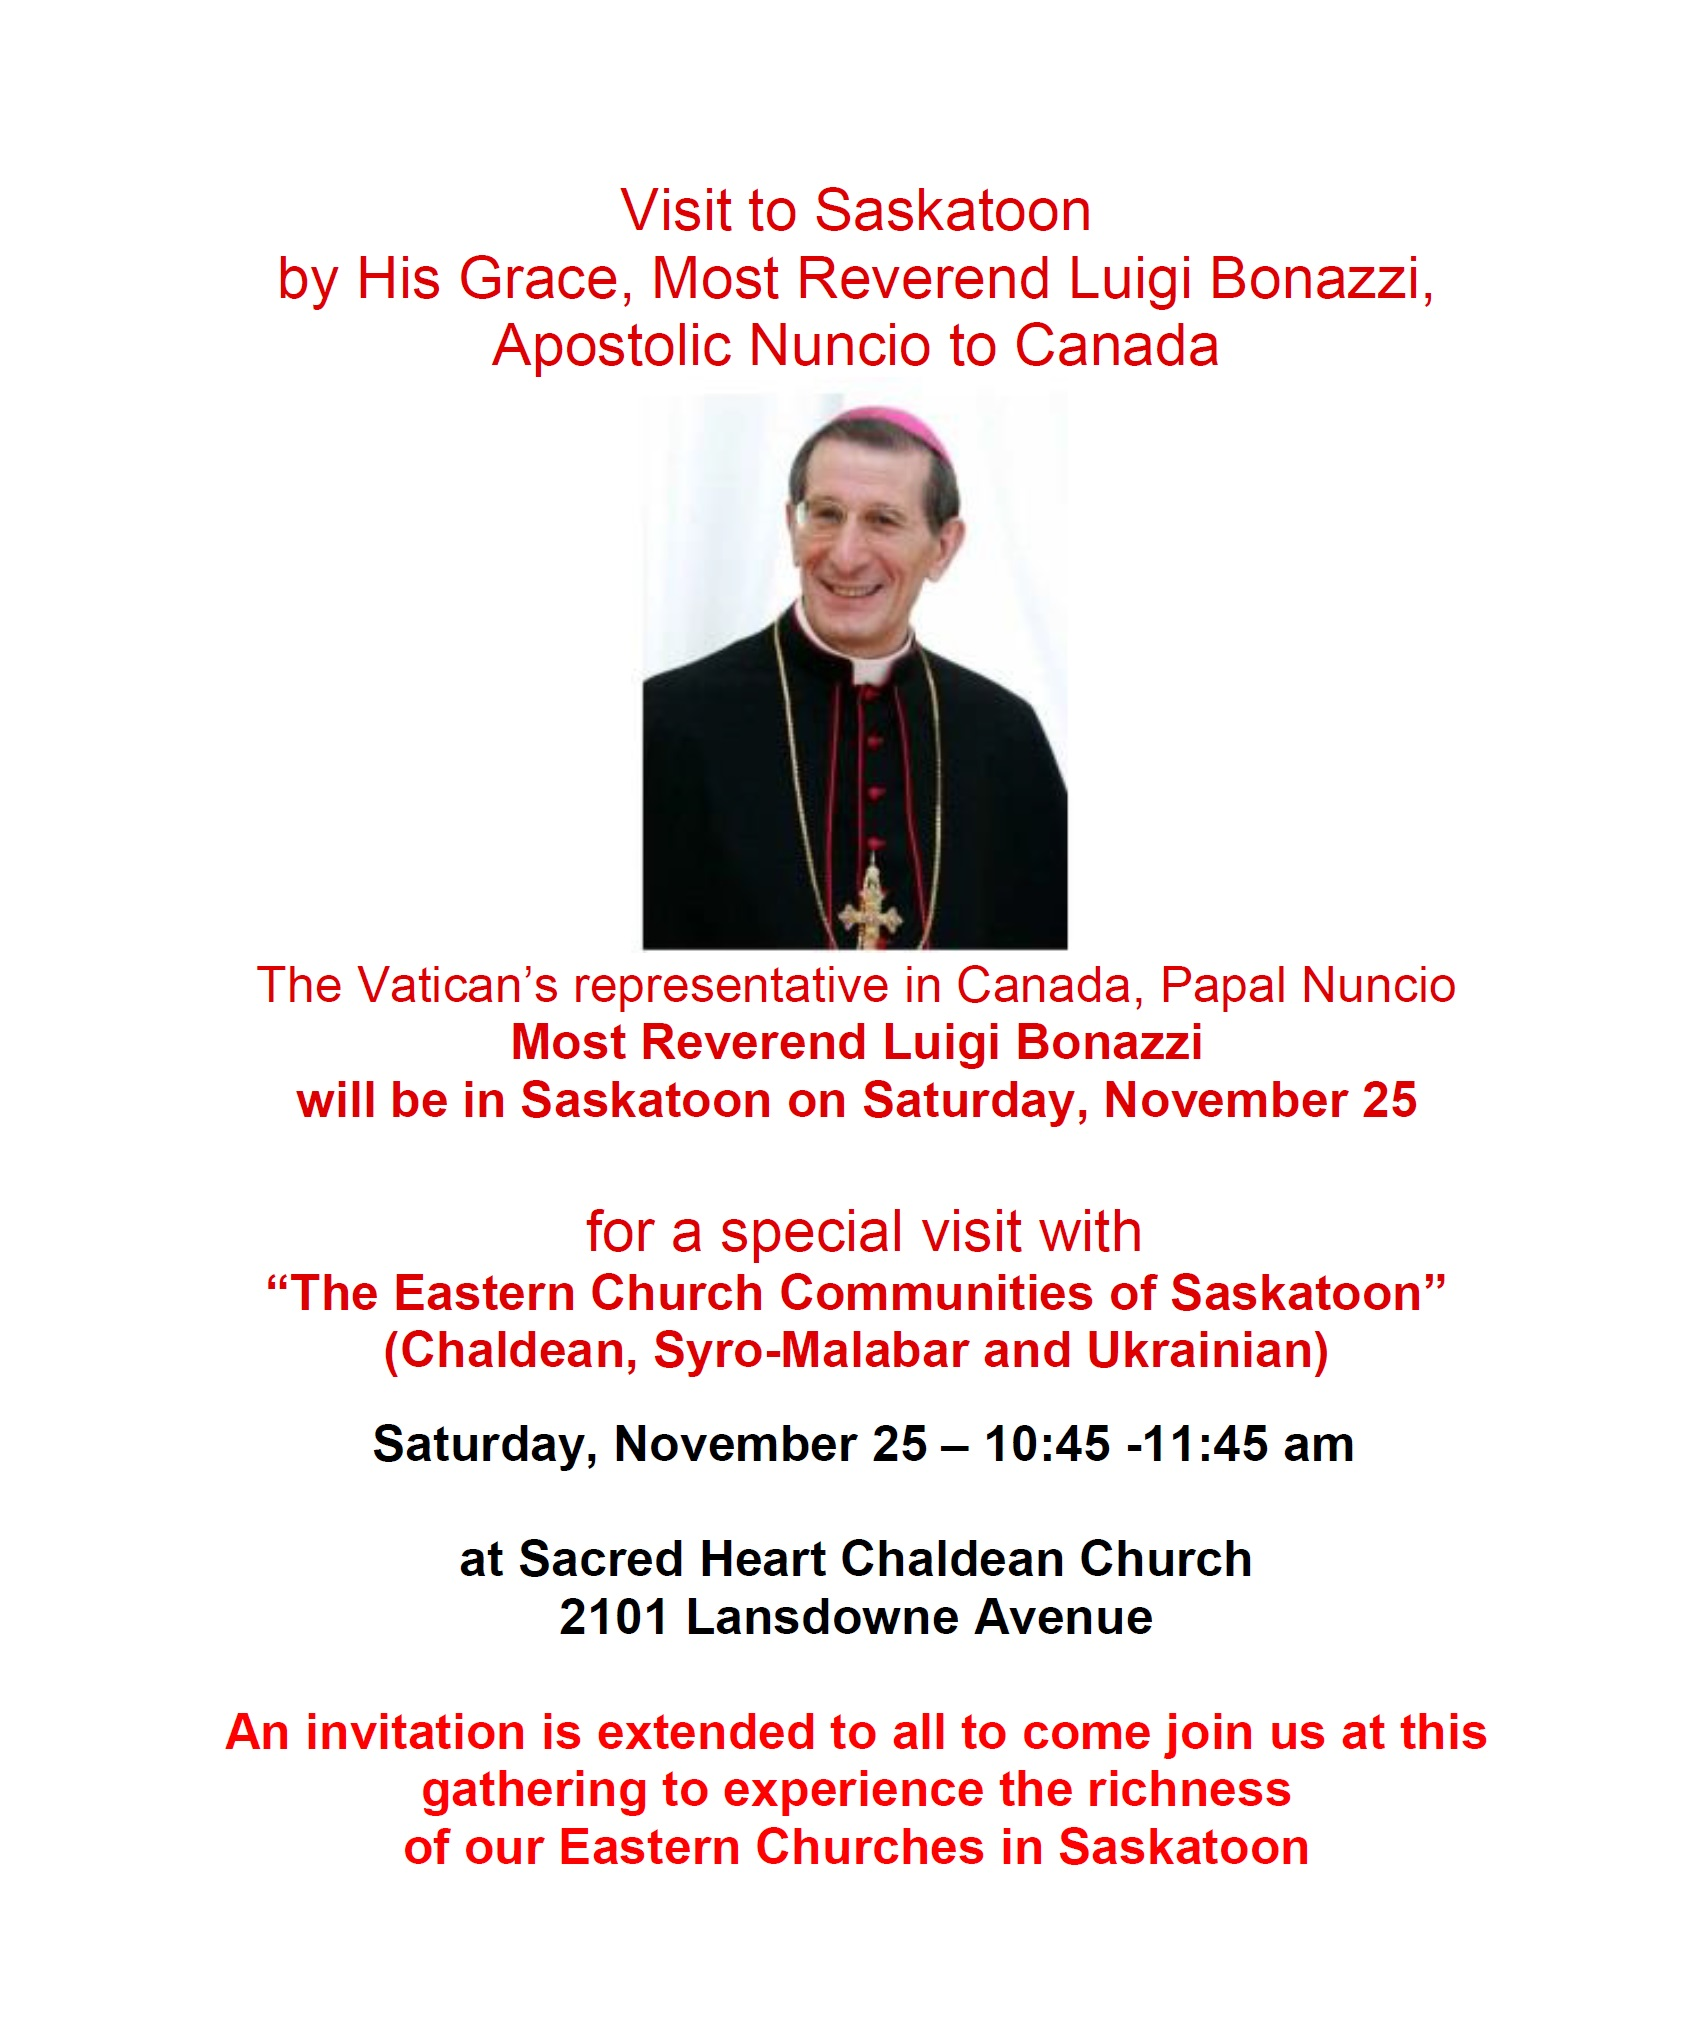 Invitation to the visit by his grace most reverend luigi bonazzi invitation to the visit by his grace most reverend luigi bonazzi apostolic nuncio to canada on saturday november 25 2017 sacred heart chaldean church stopboris Choice Image